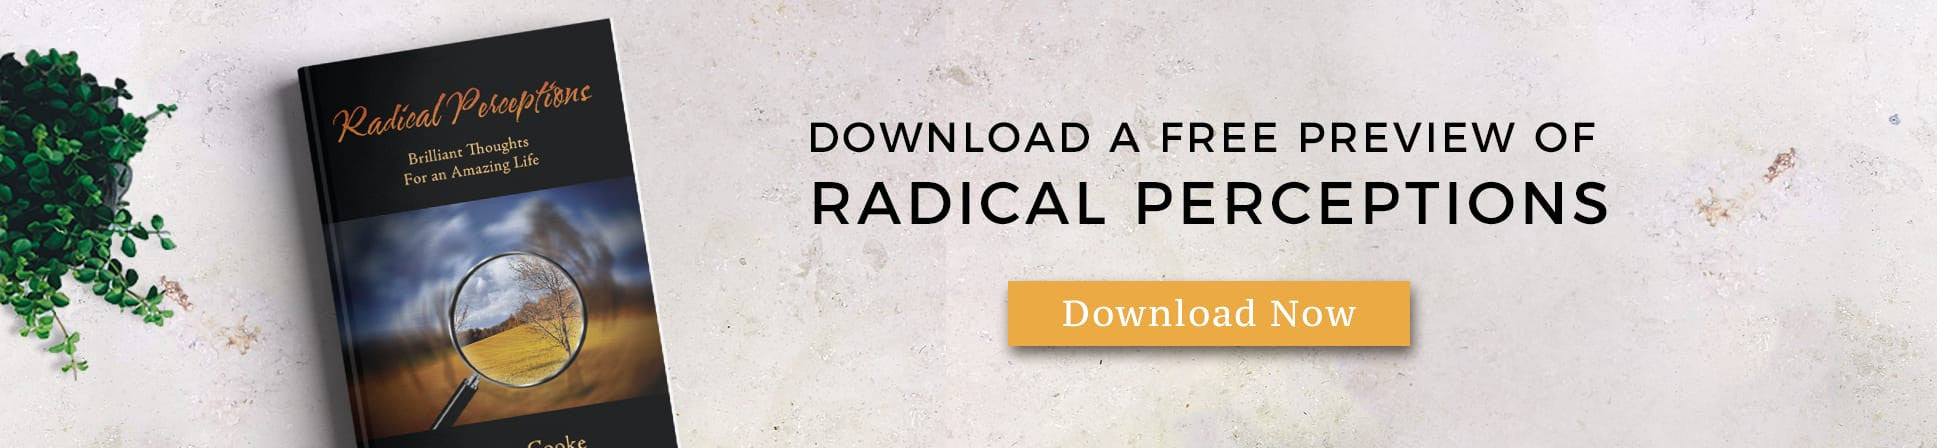 Radical Perceptions FREE preview